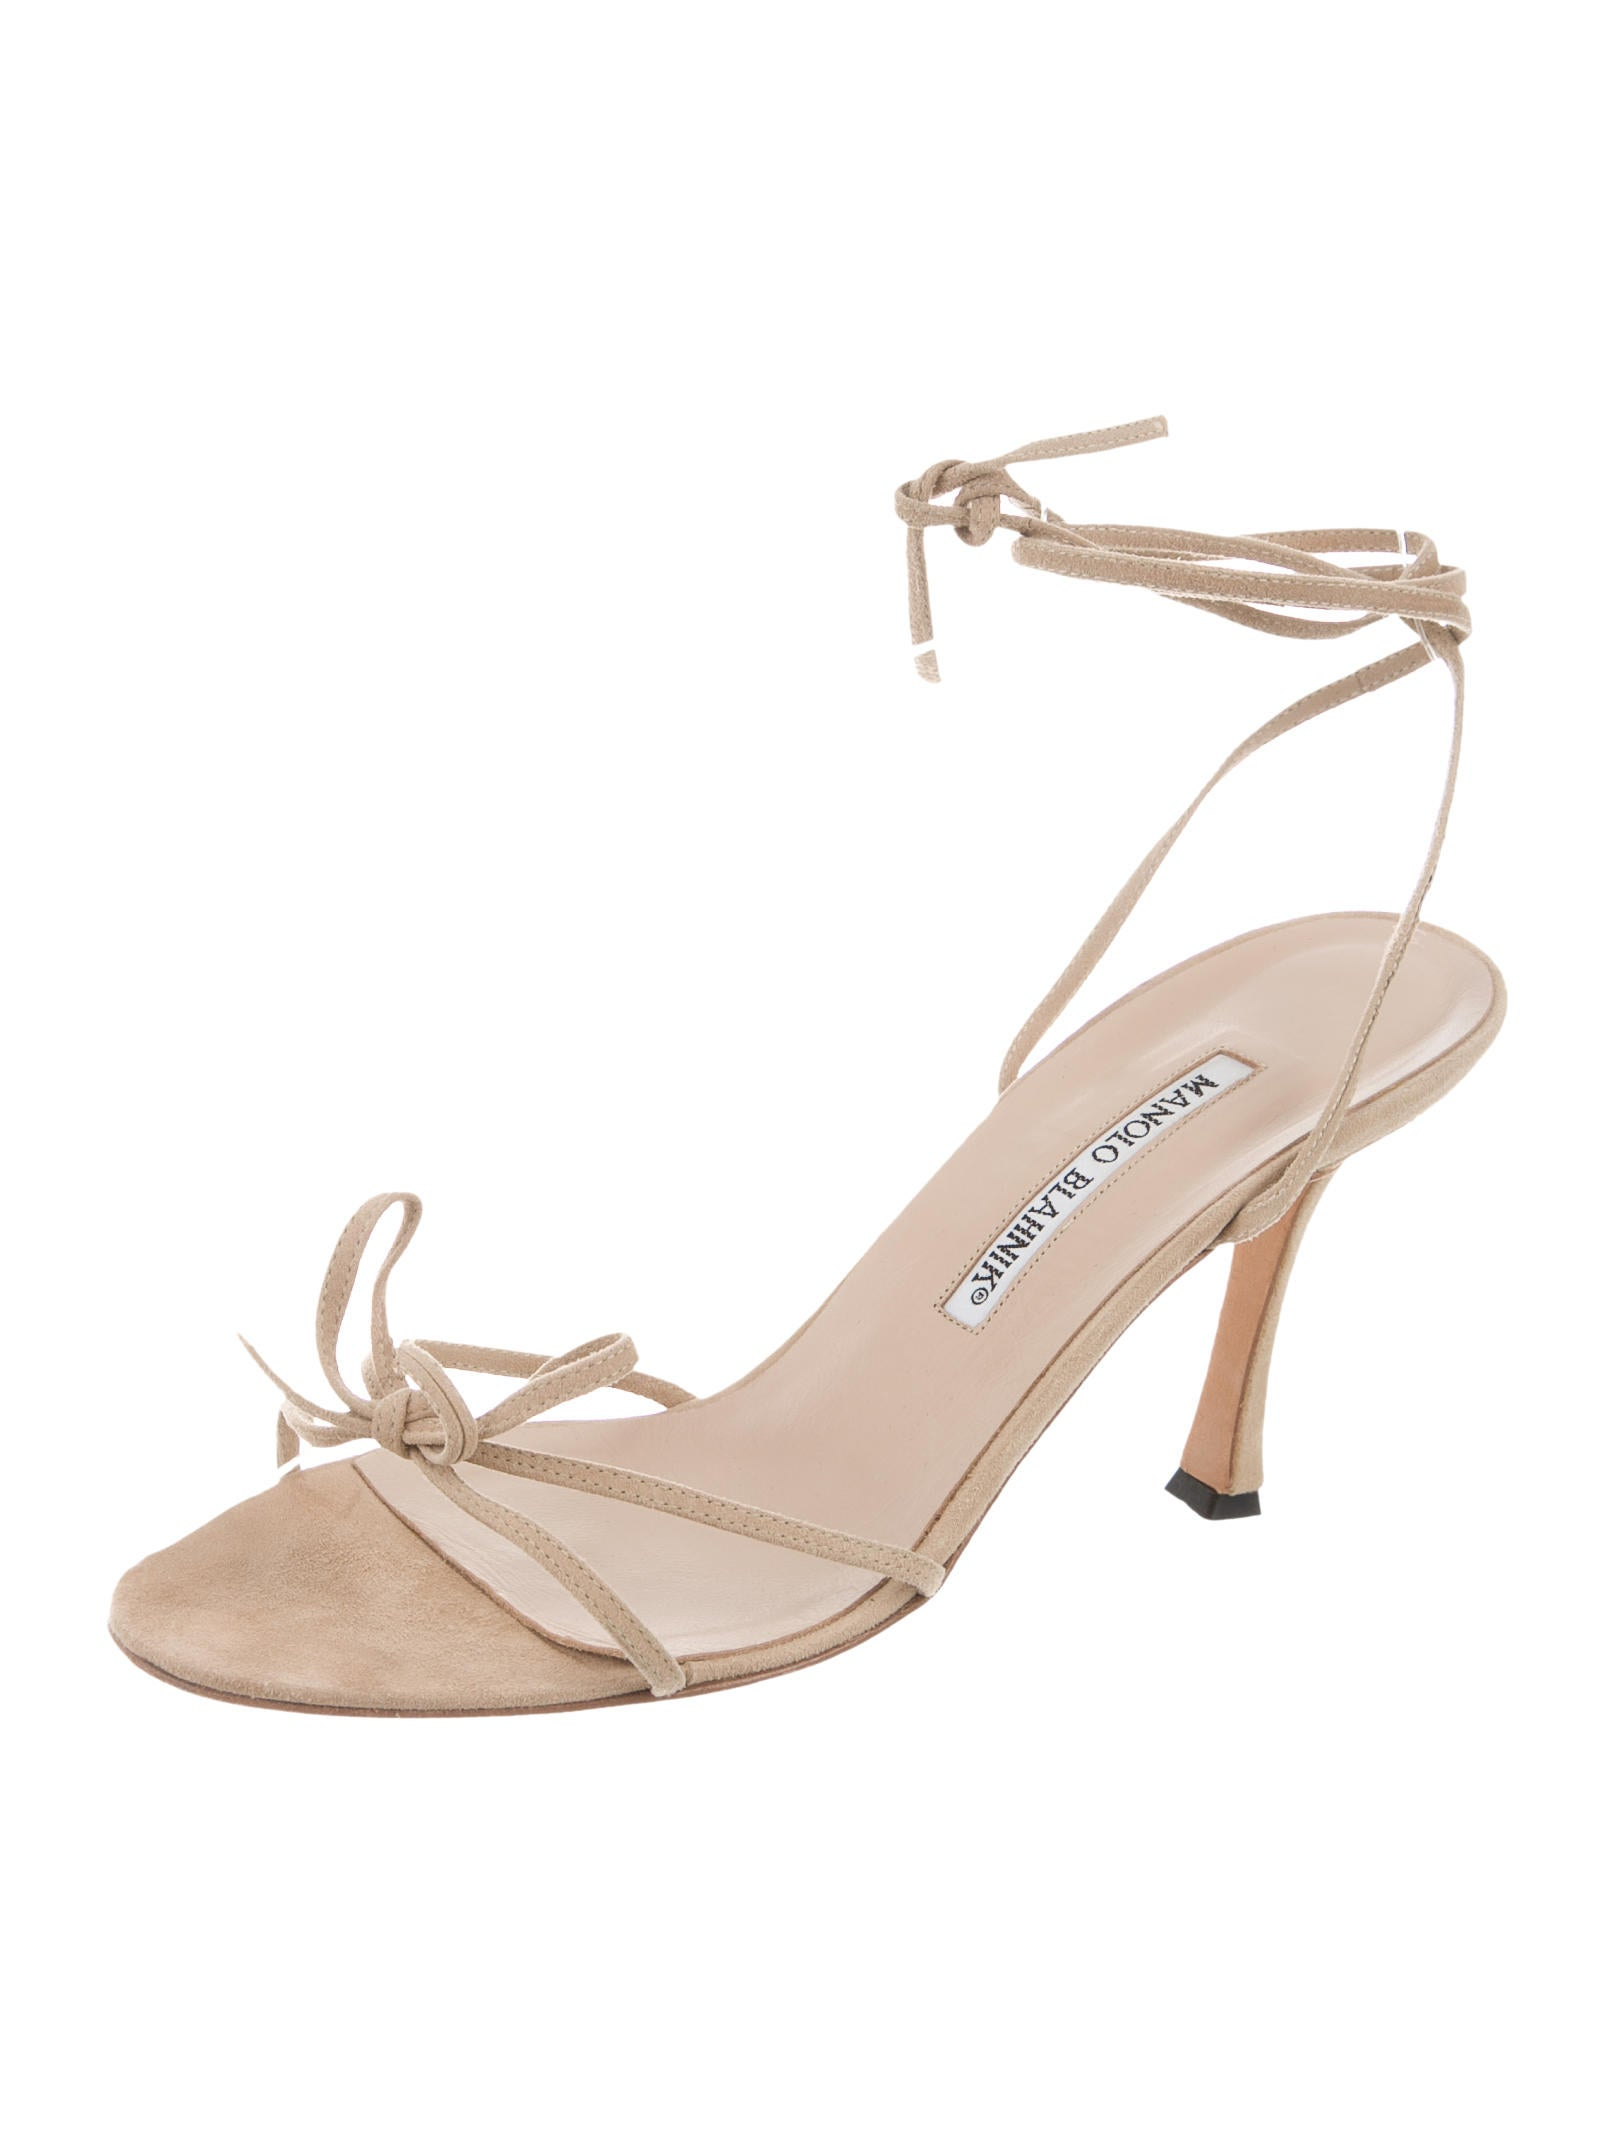 Manolo blahnik suede lace up sandals shoes moo60370 for Shoes by manolo blahnik